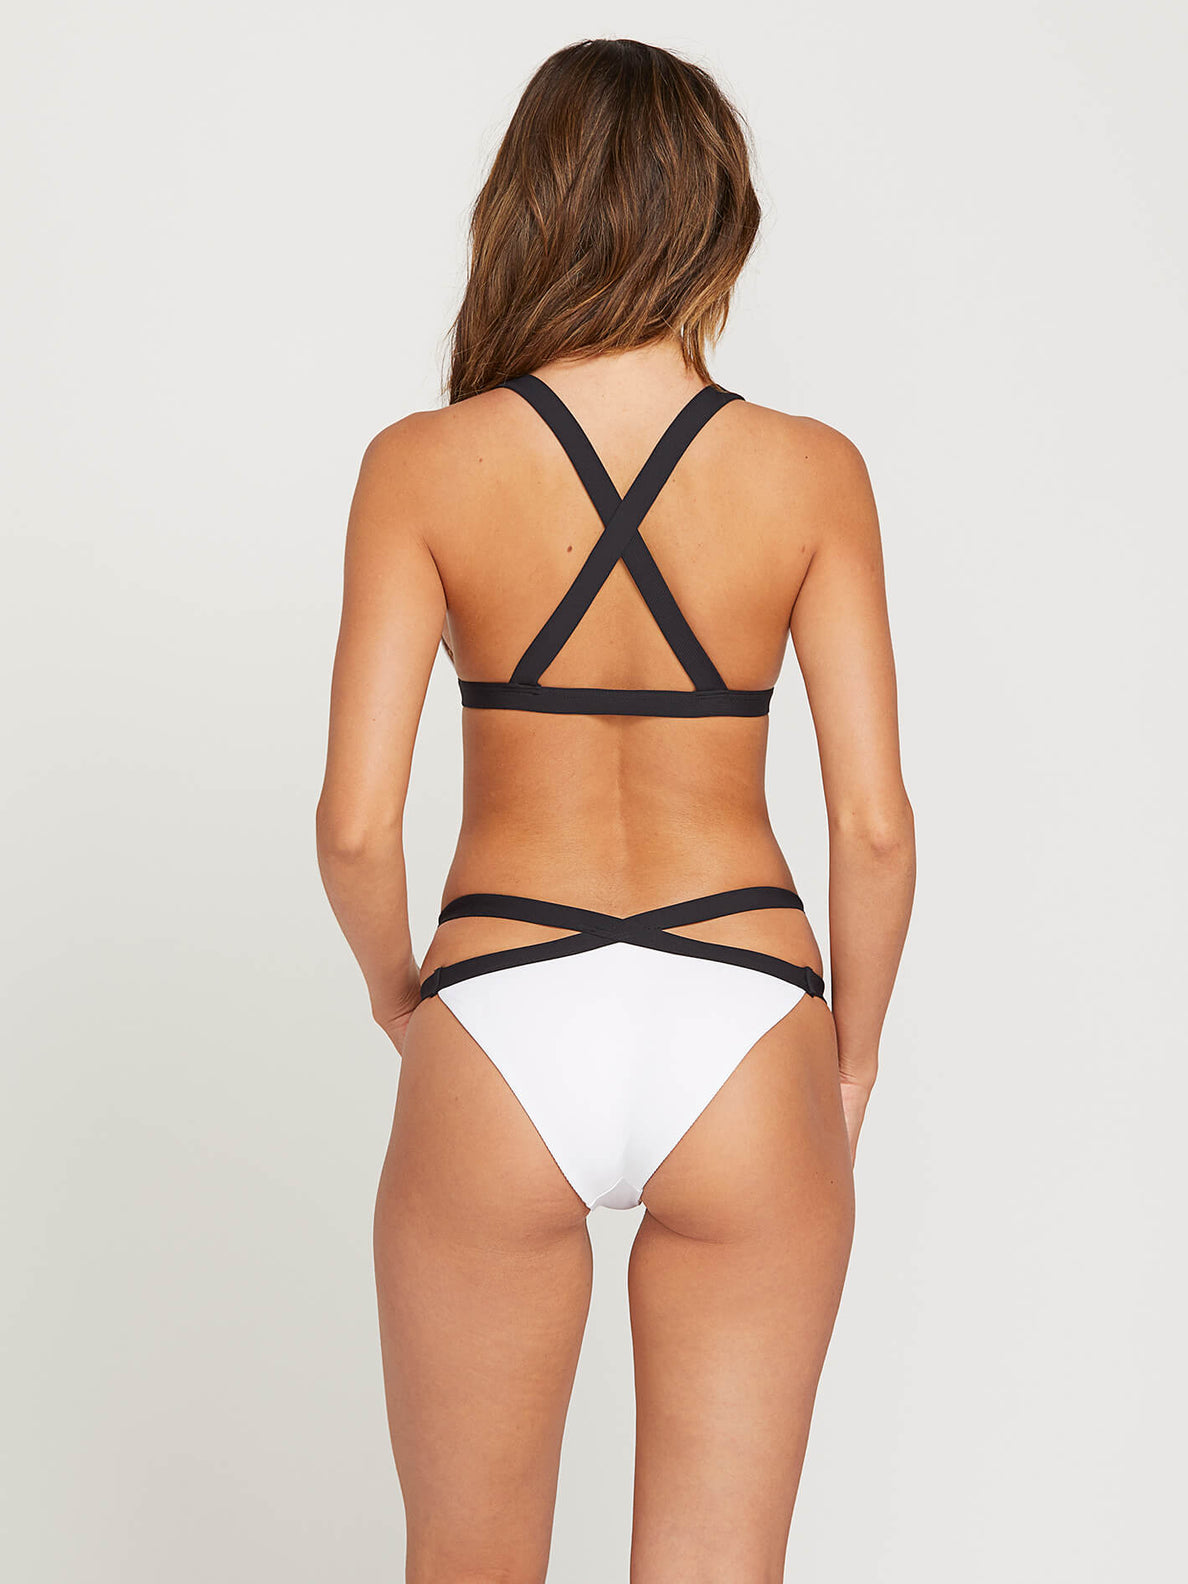 Simply Rib Triangle Top In White, Back View